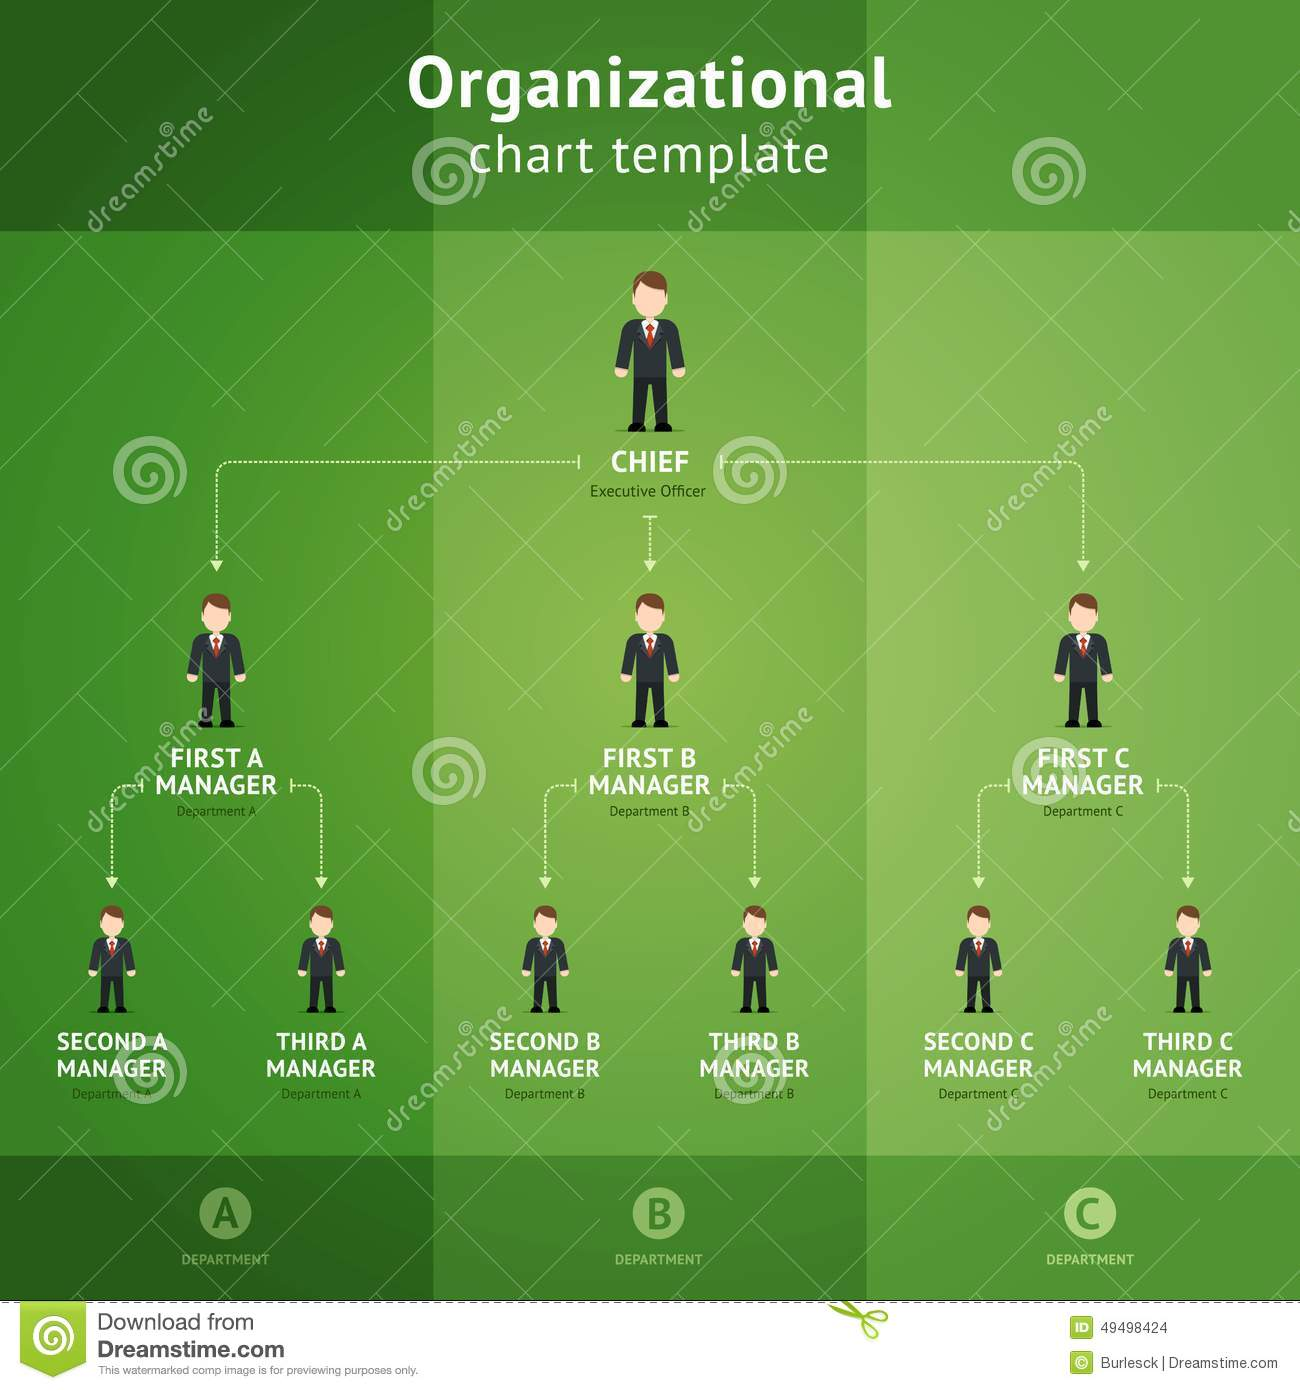 Organizational chart template stock vector illustration of levels hierarchy diagram from chef to subordinates on a green background organizational chart template vector illustration ccuart Image collections